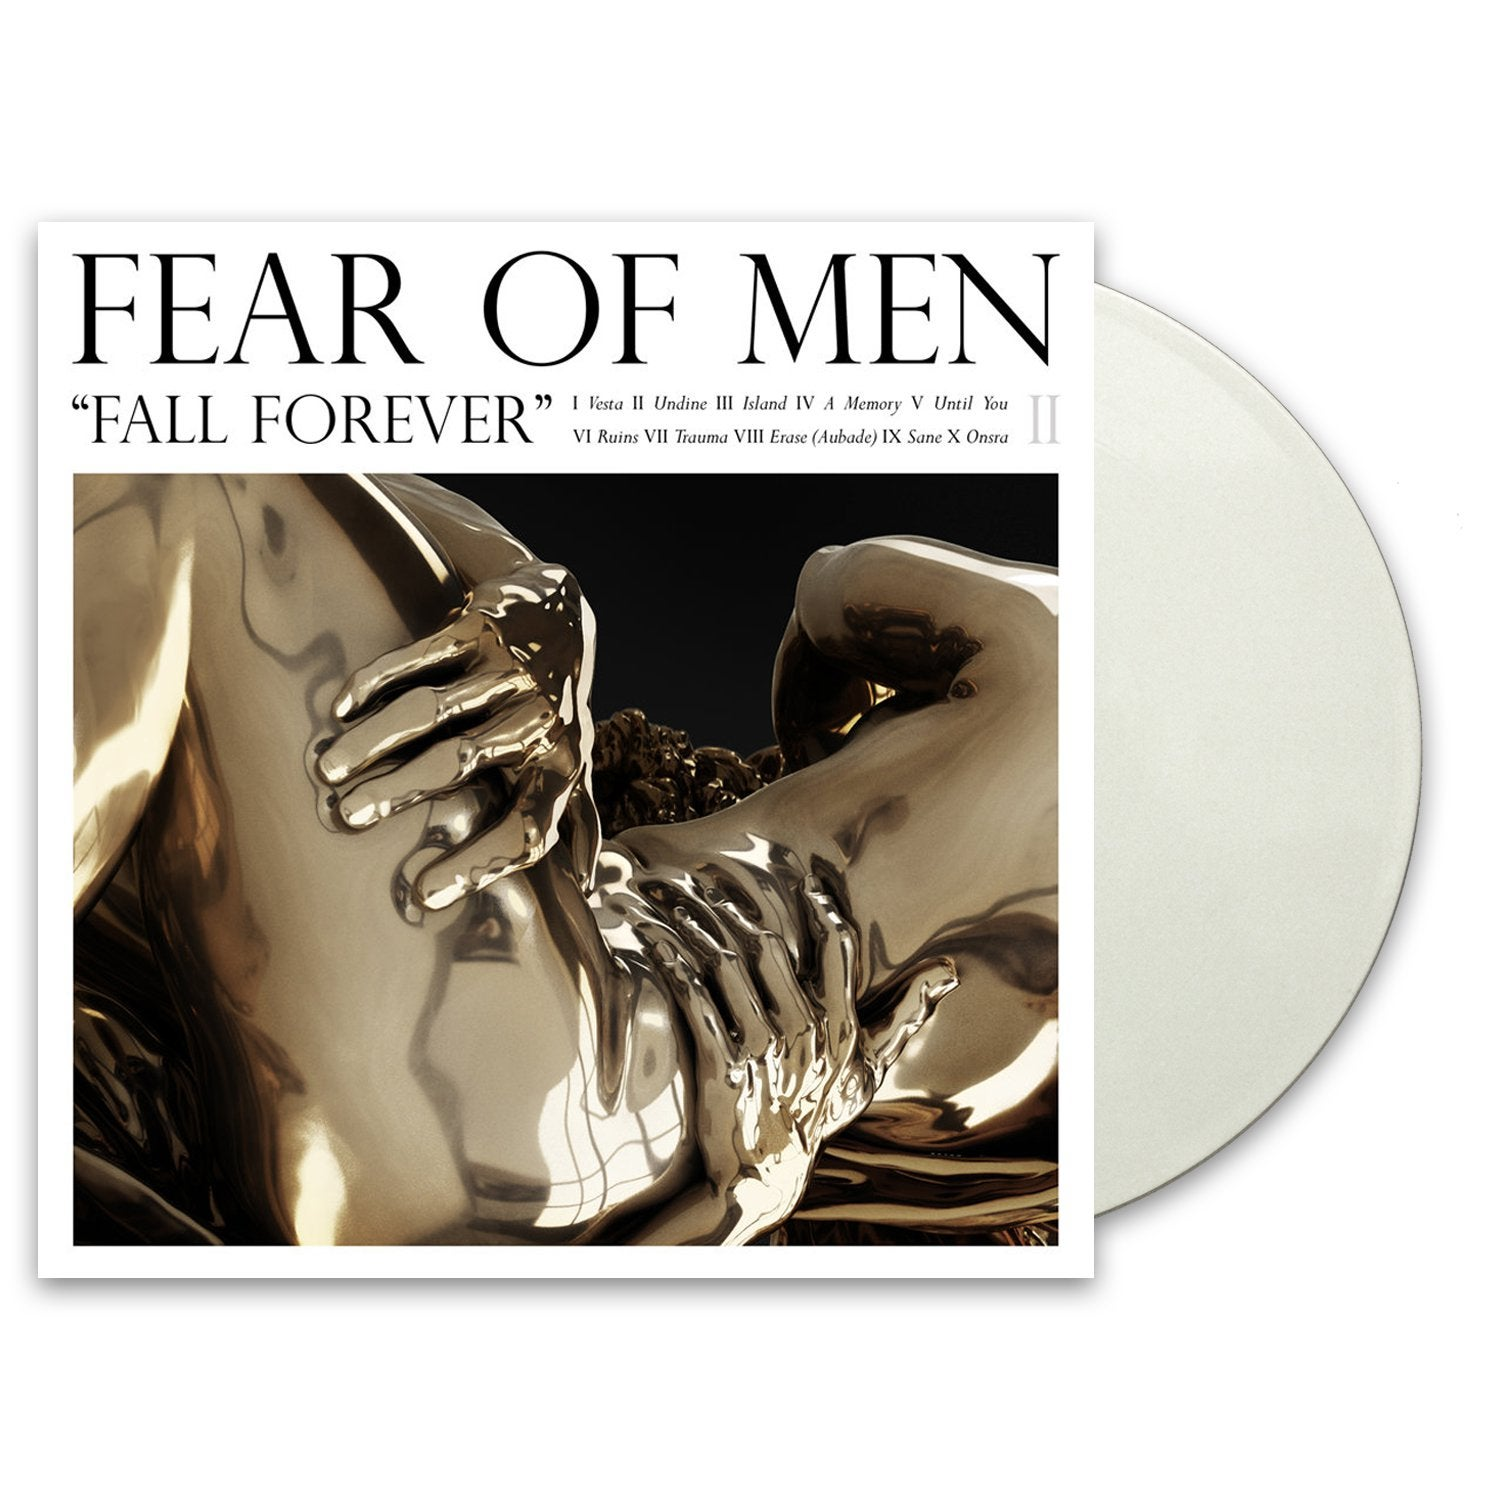 Image of Fear of Men - 'Fall Forever' LP (Limited white vinyl)